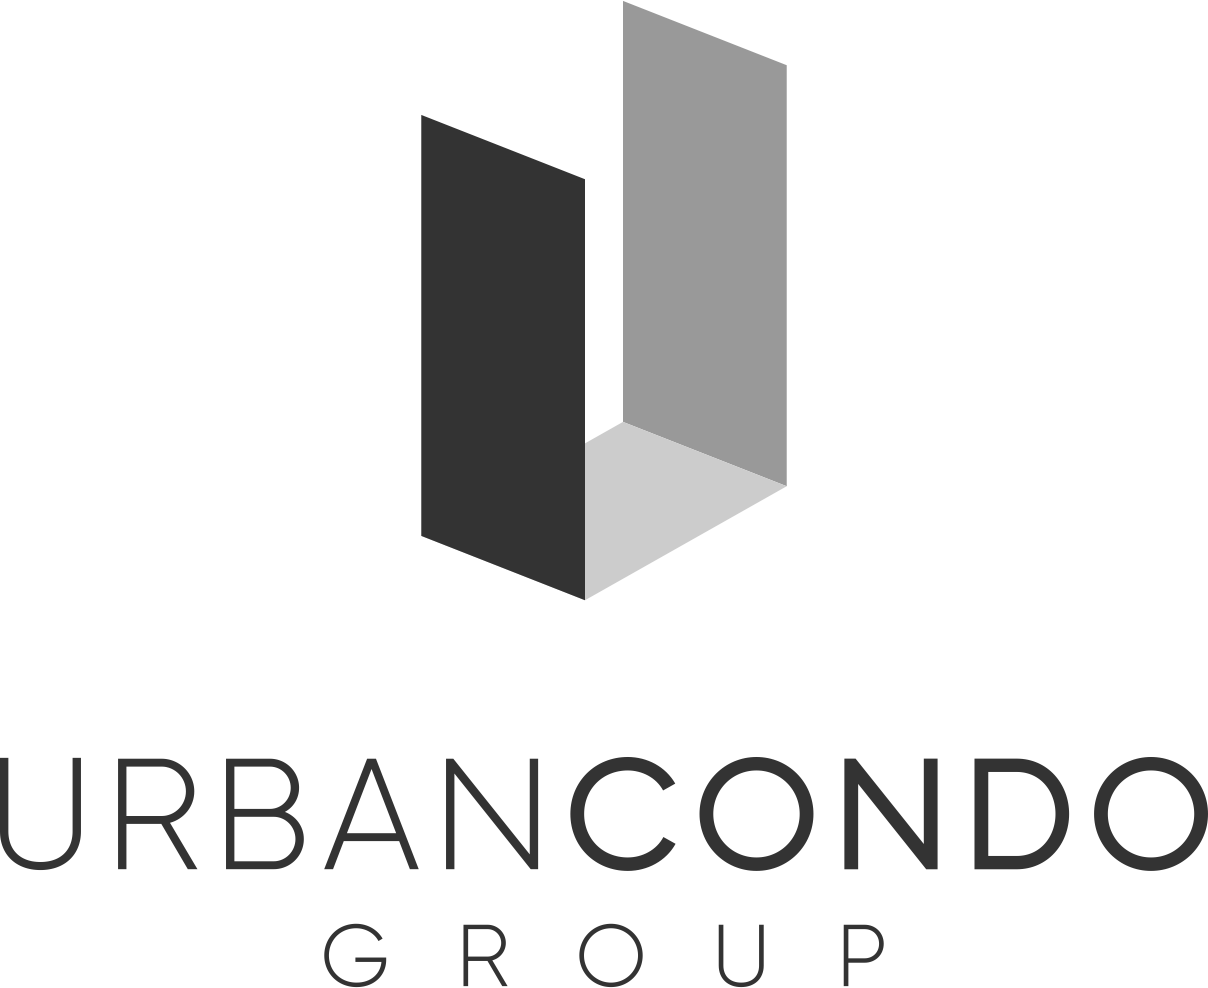 Urban Condo Group